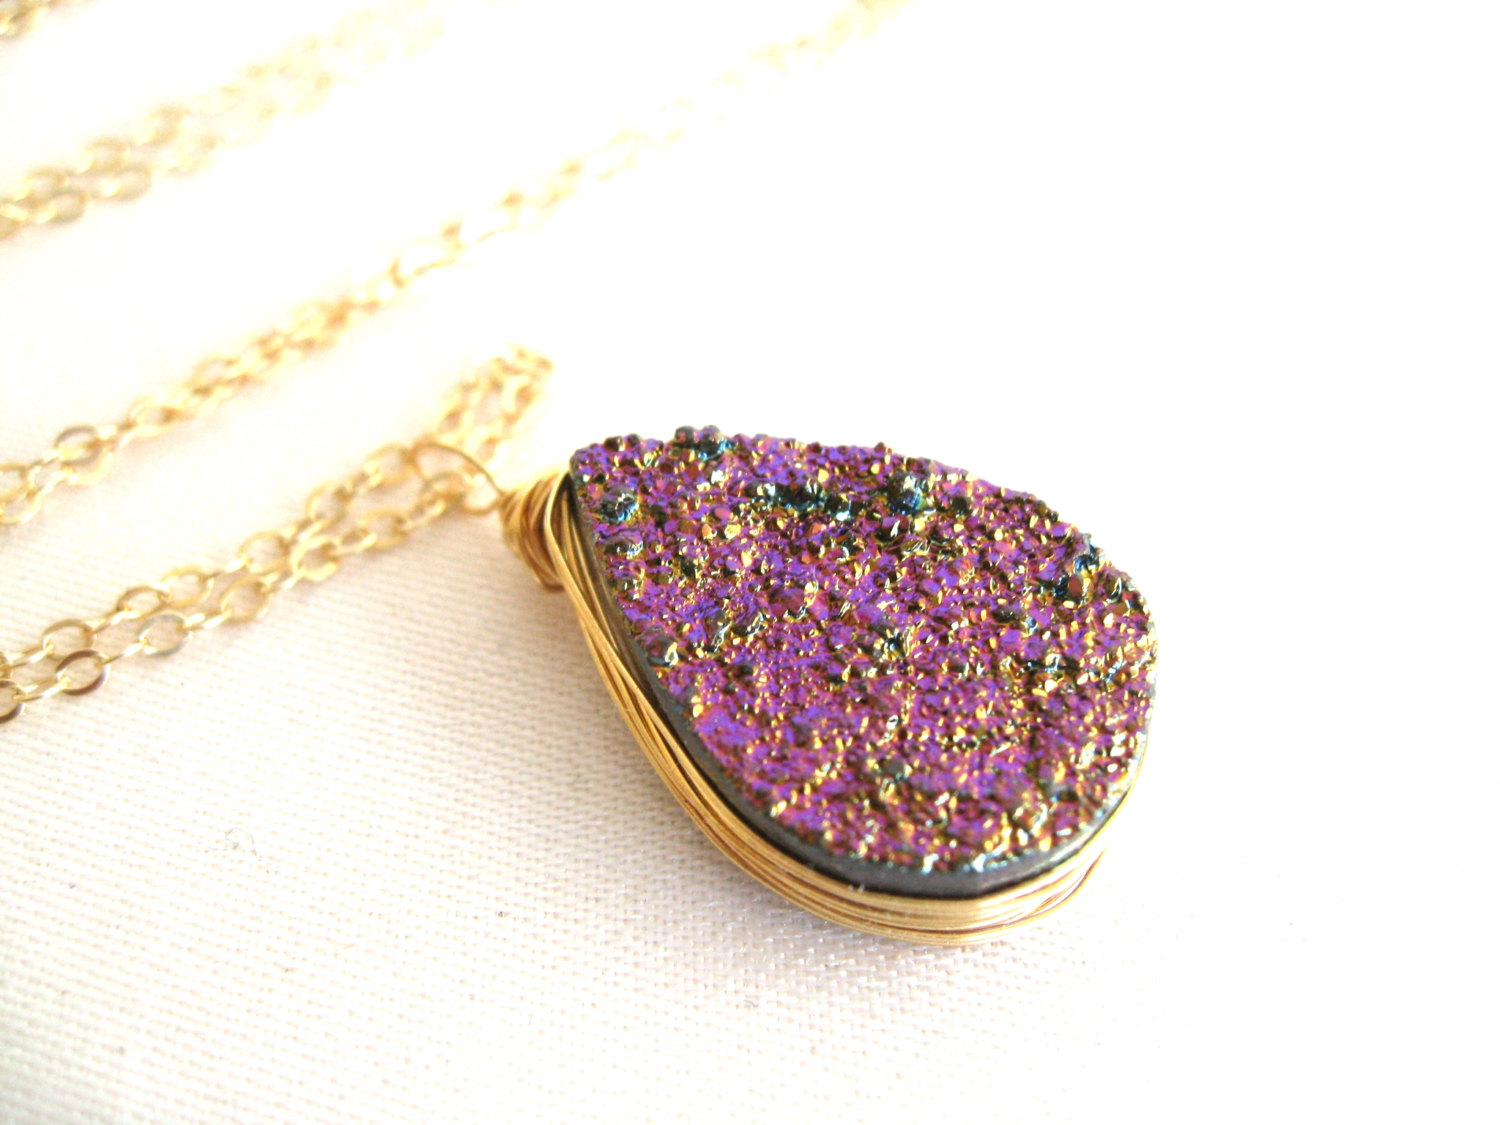 Radiant orchid druzy necklace lilac lavender gift for her under 60 spring fashion vitrine